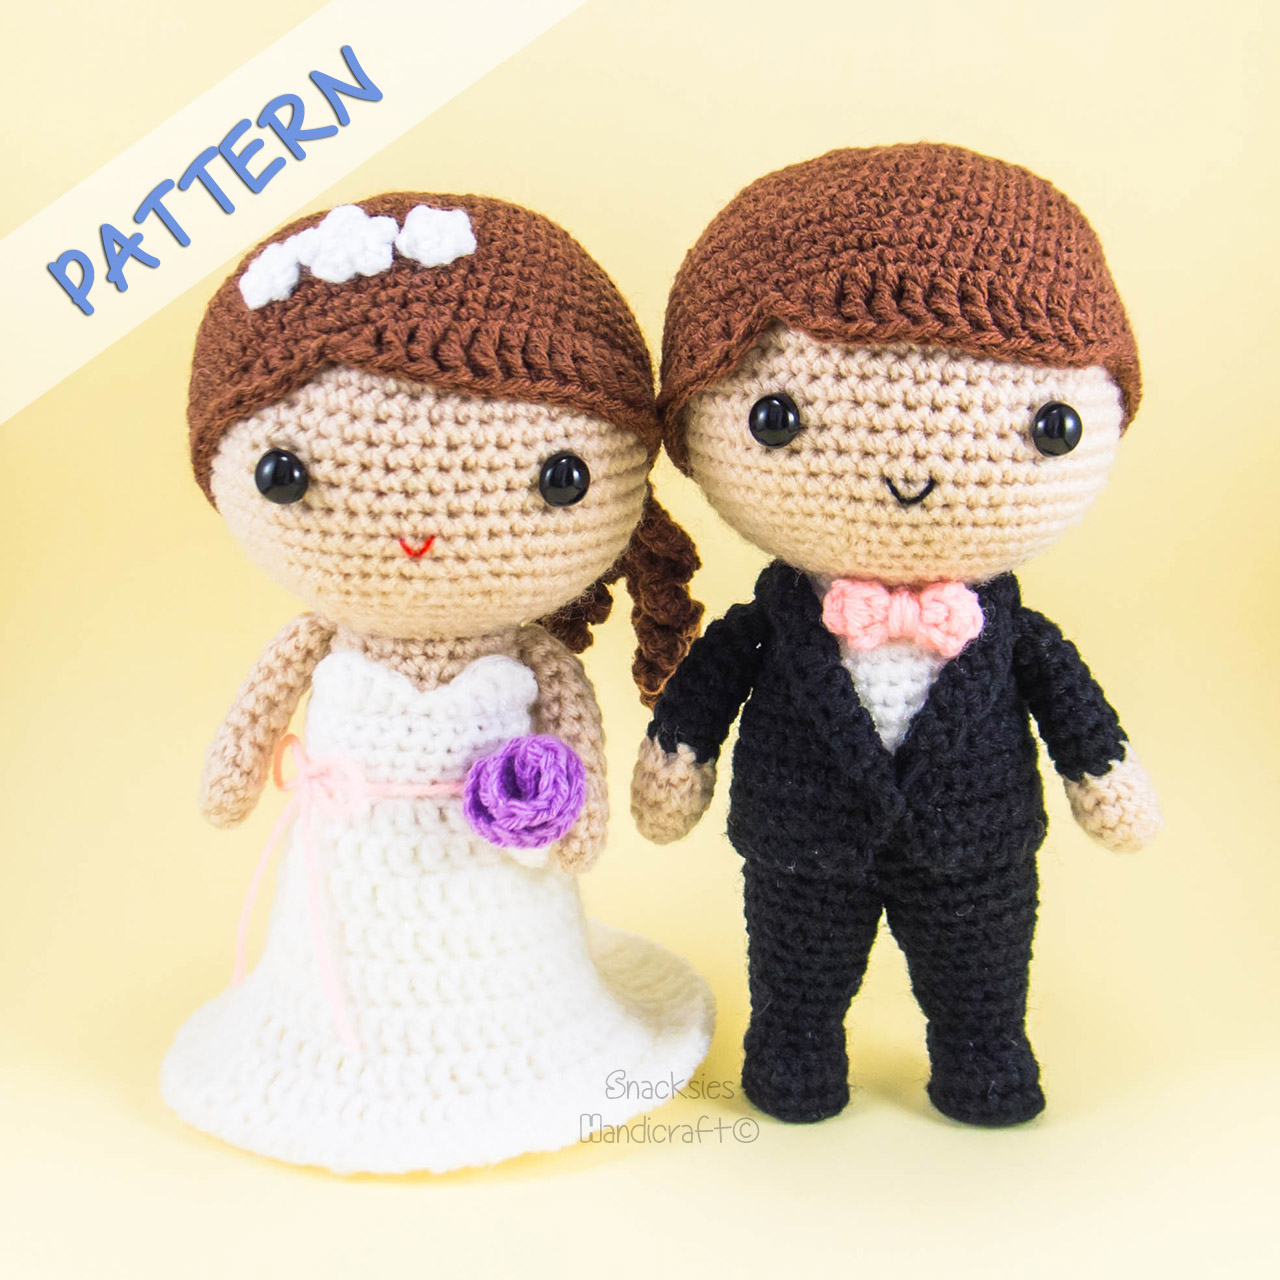 Amigurumi And Crochet : Bride and Groom Amigurumi Pattern ~ Snacksies Handicraft ...